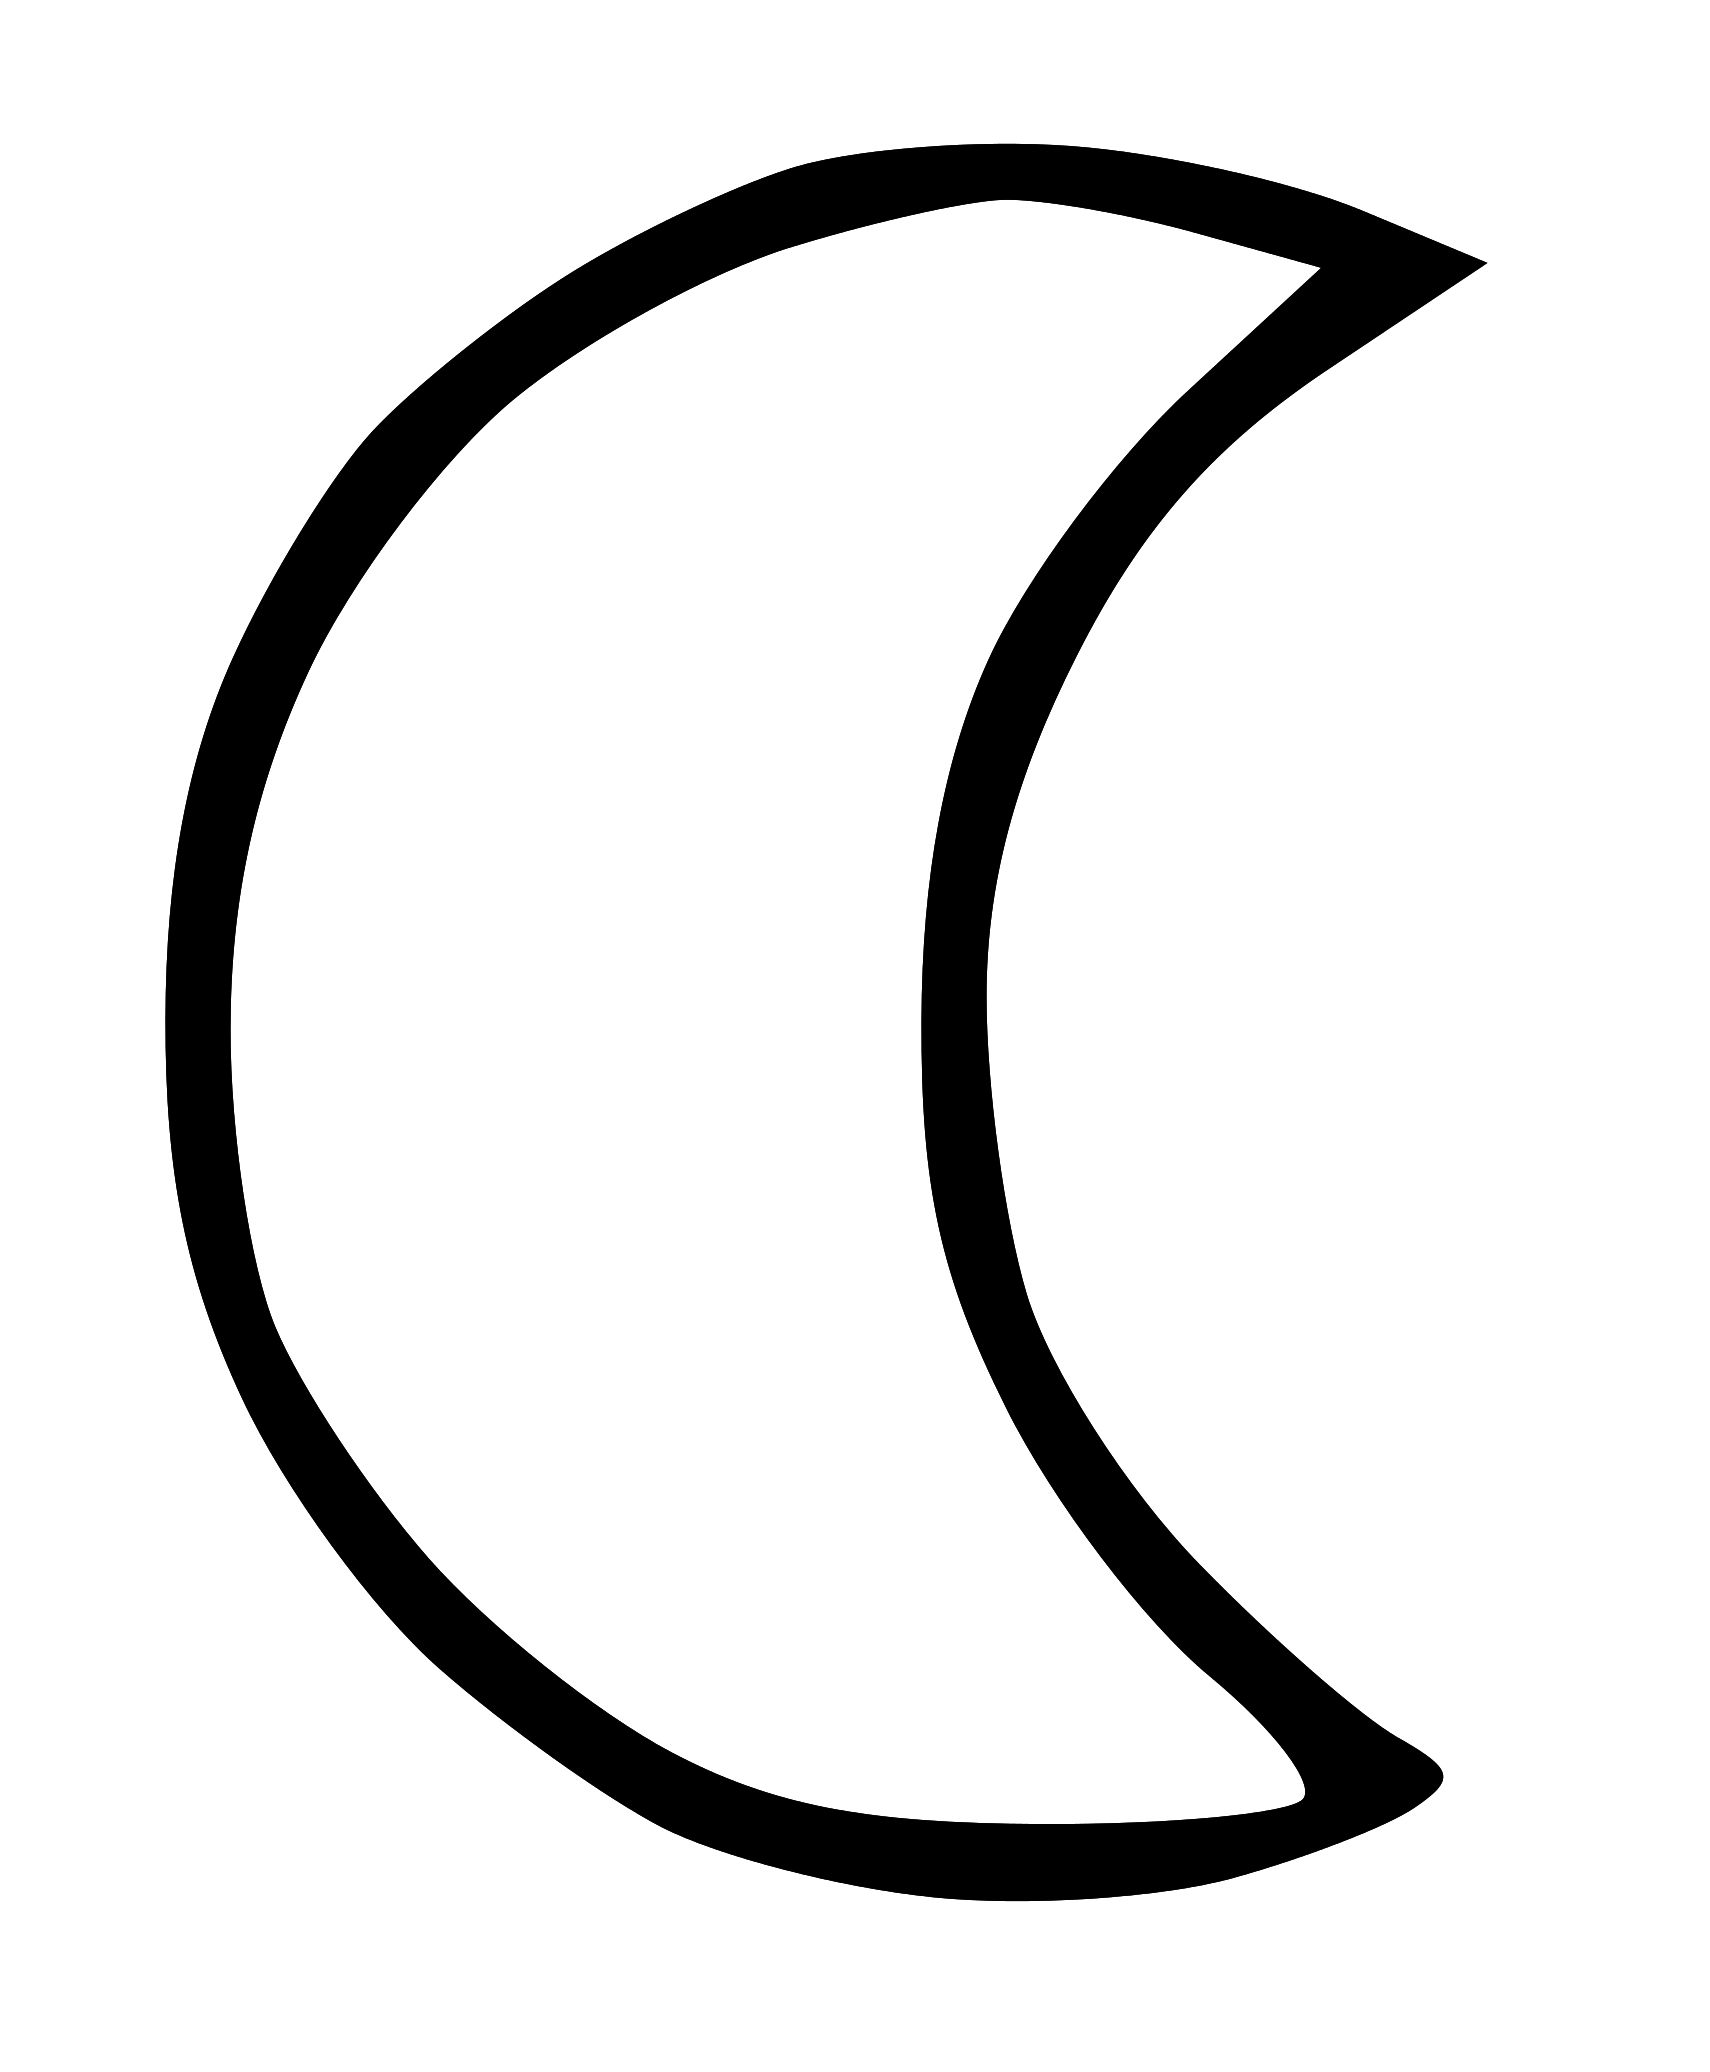 Moon clipart outline #1